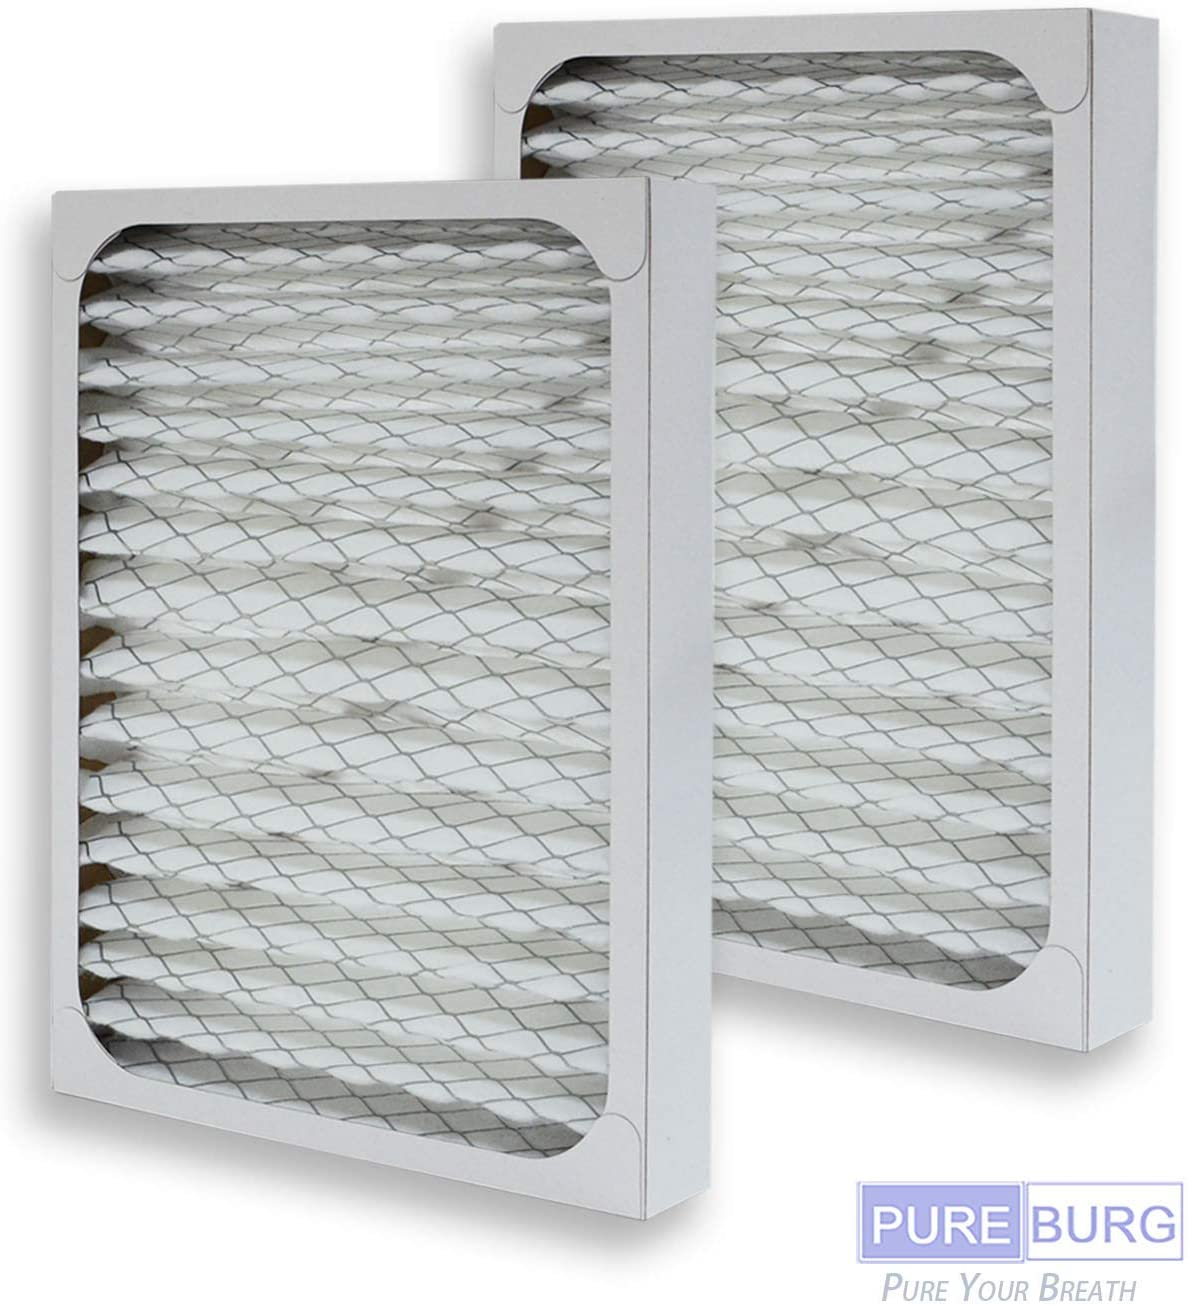 PUREBURG 2-Pack Replacement HEPA Air Filters for Hunter HEPAtech 30928 fits 30057 30059 30060 30067 30078 30079 30124 30126 Air Purifiers